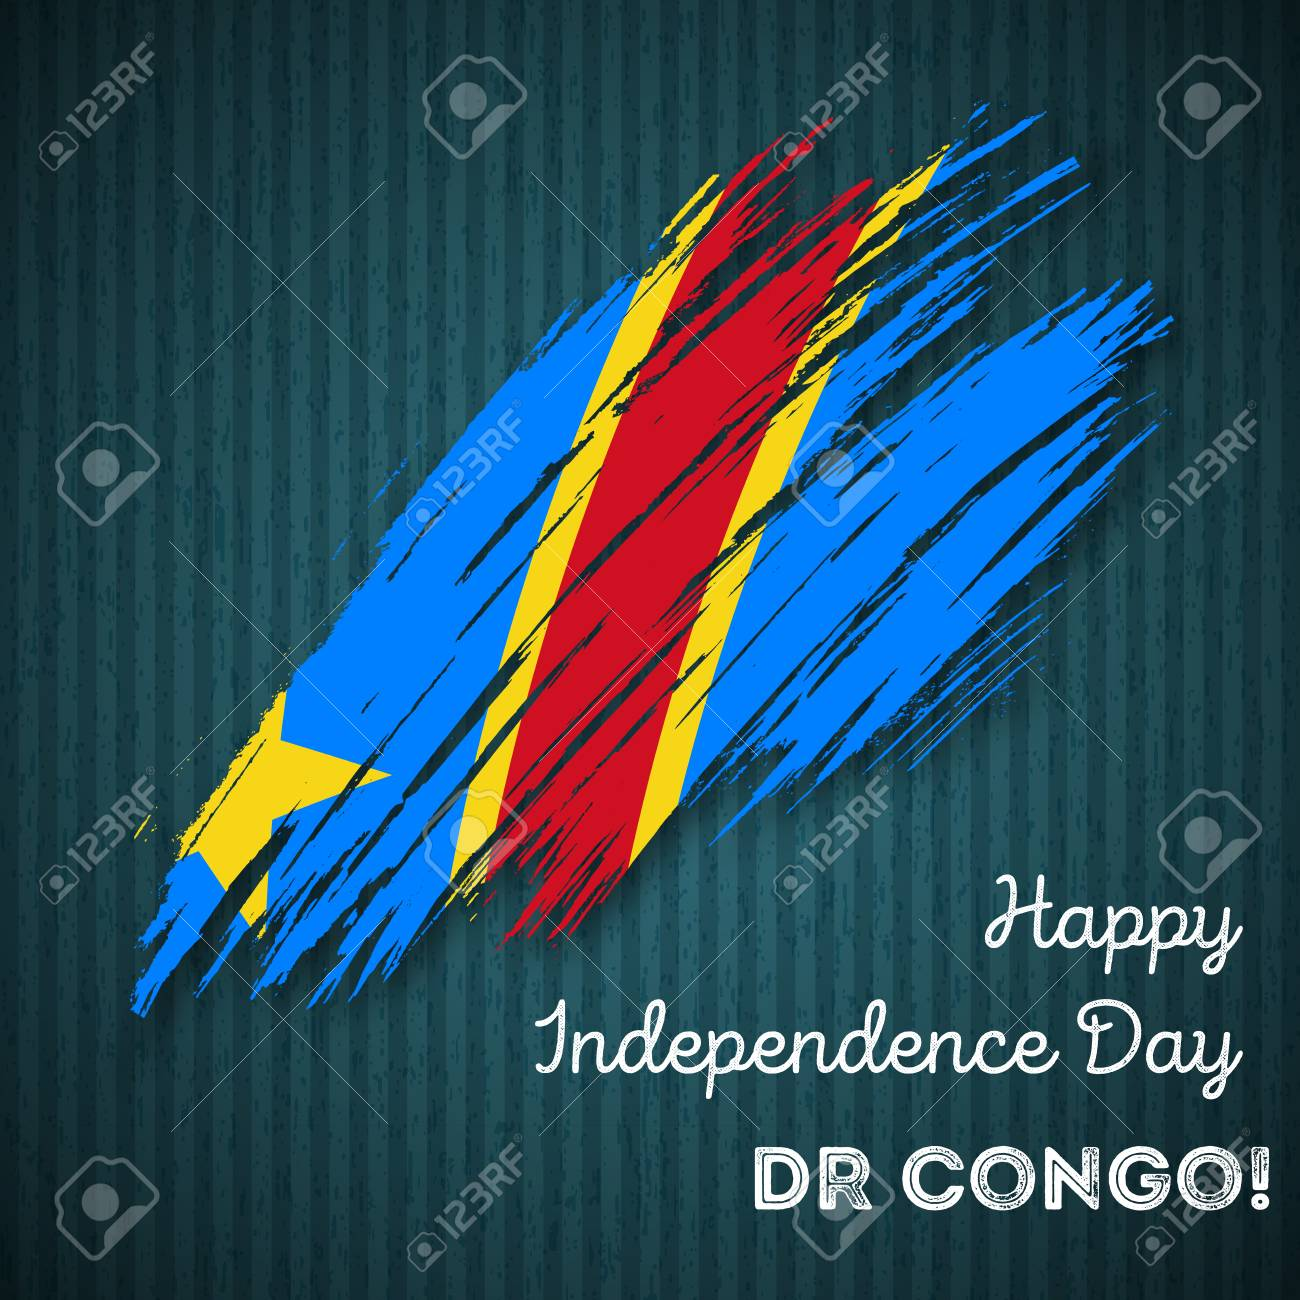 DR Congo Independence Day Patriotic Design Expressive Brush - Congo independence day